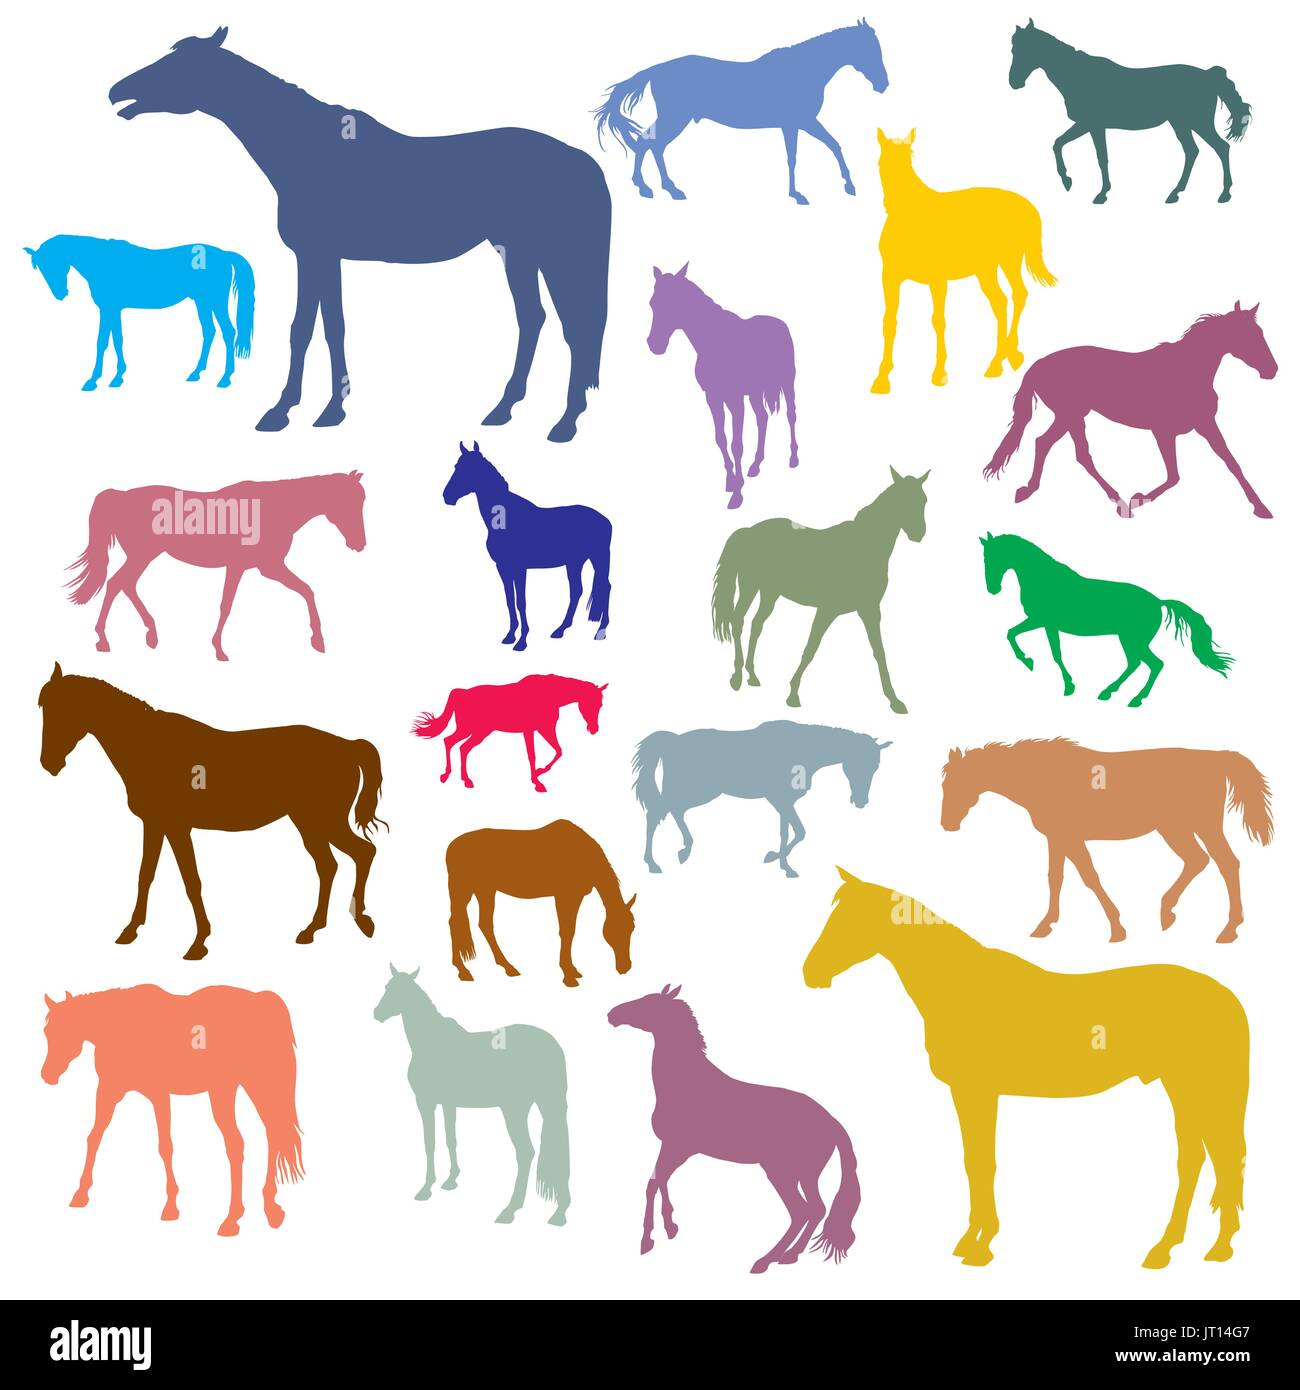 Vector isolated colorful standing, trotting and galloping horses silhouettes on white background - Stock Image